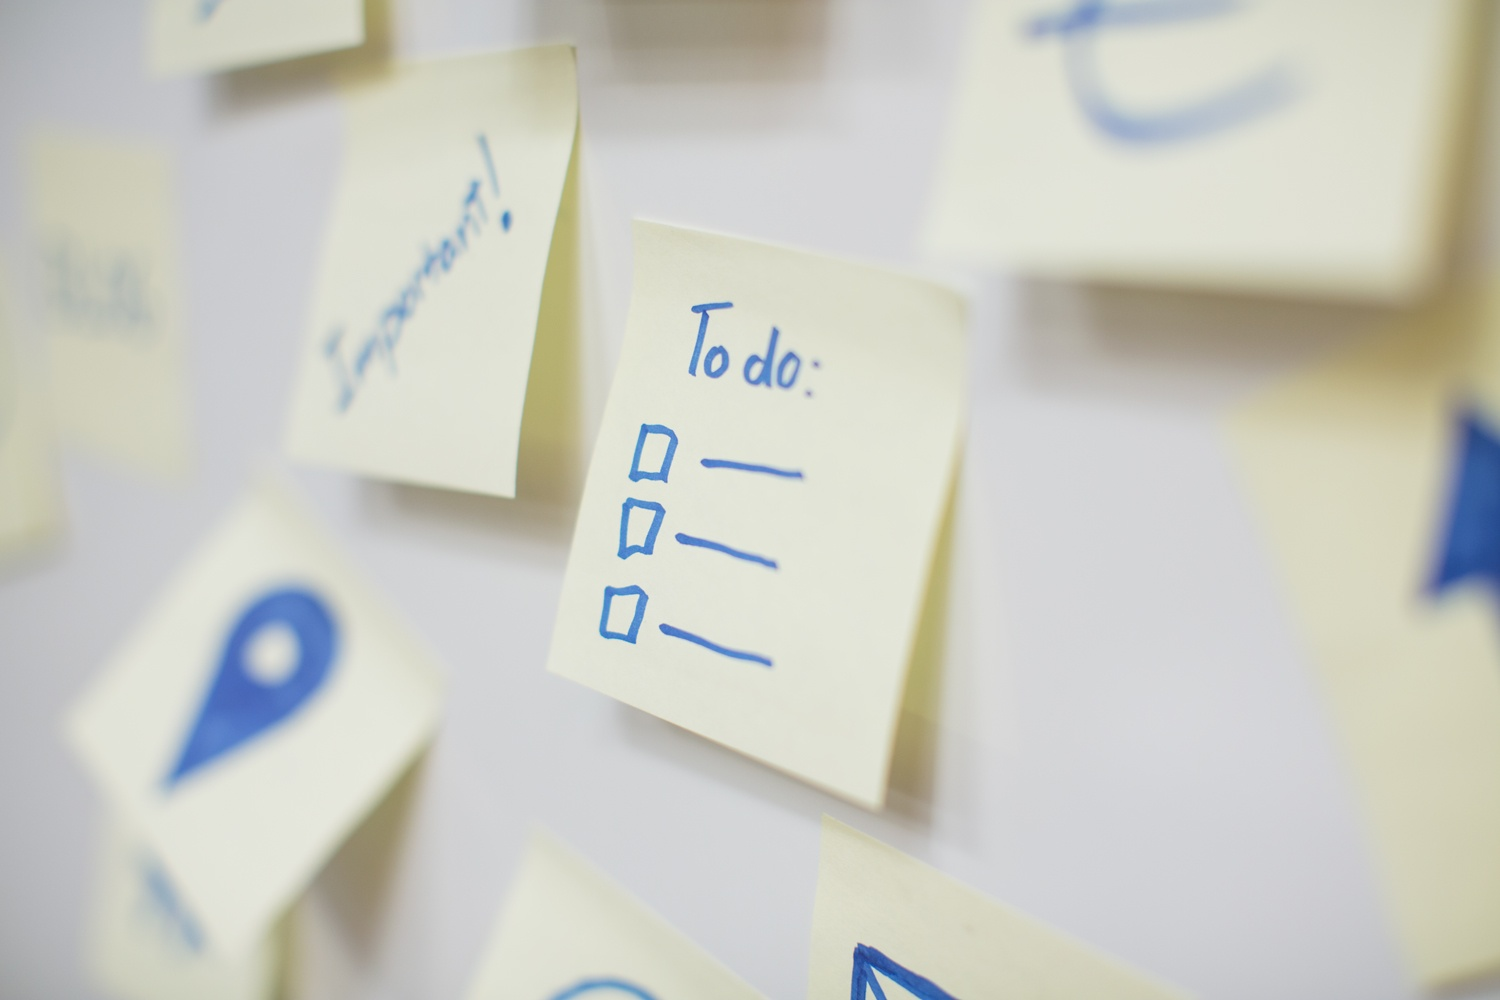 sticky-notes-to-do-list.jpg